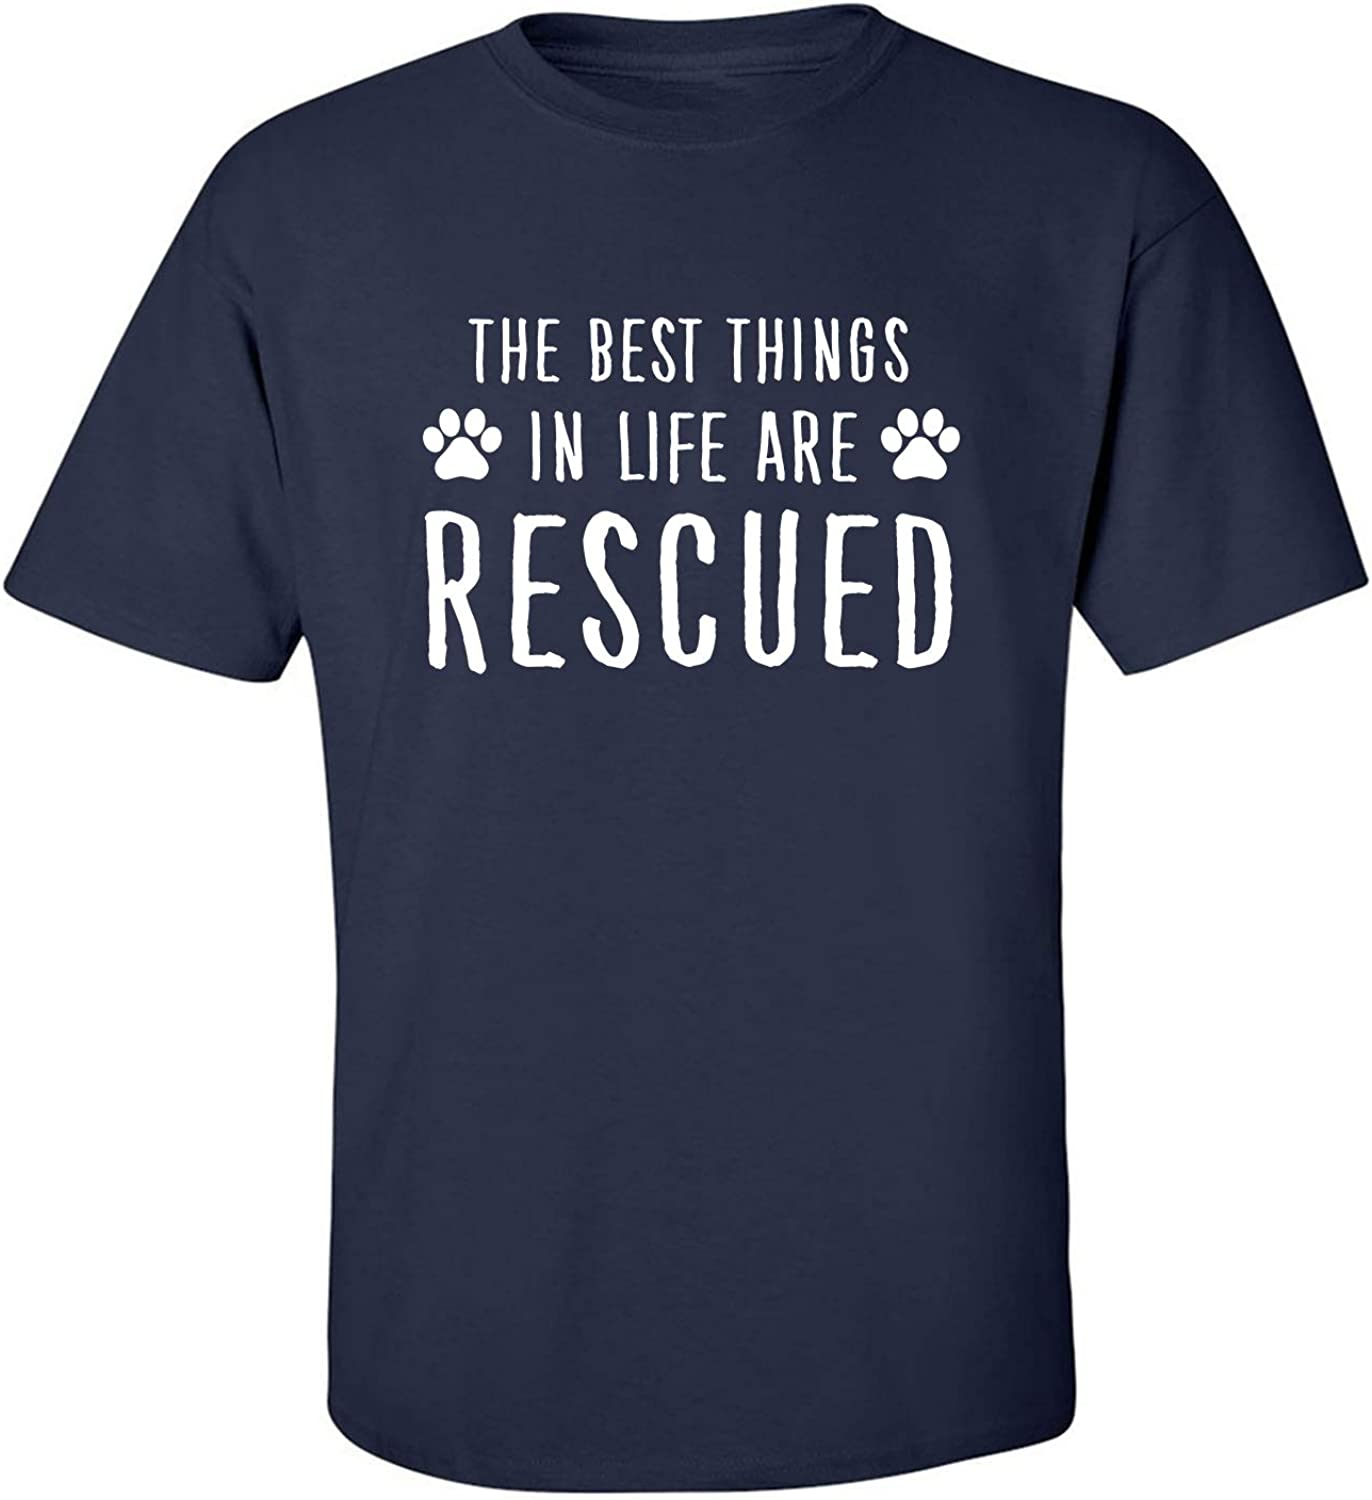 Best Things in Life are Rescued Adult T-Shirt in Navy - XXXXX-Large